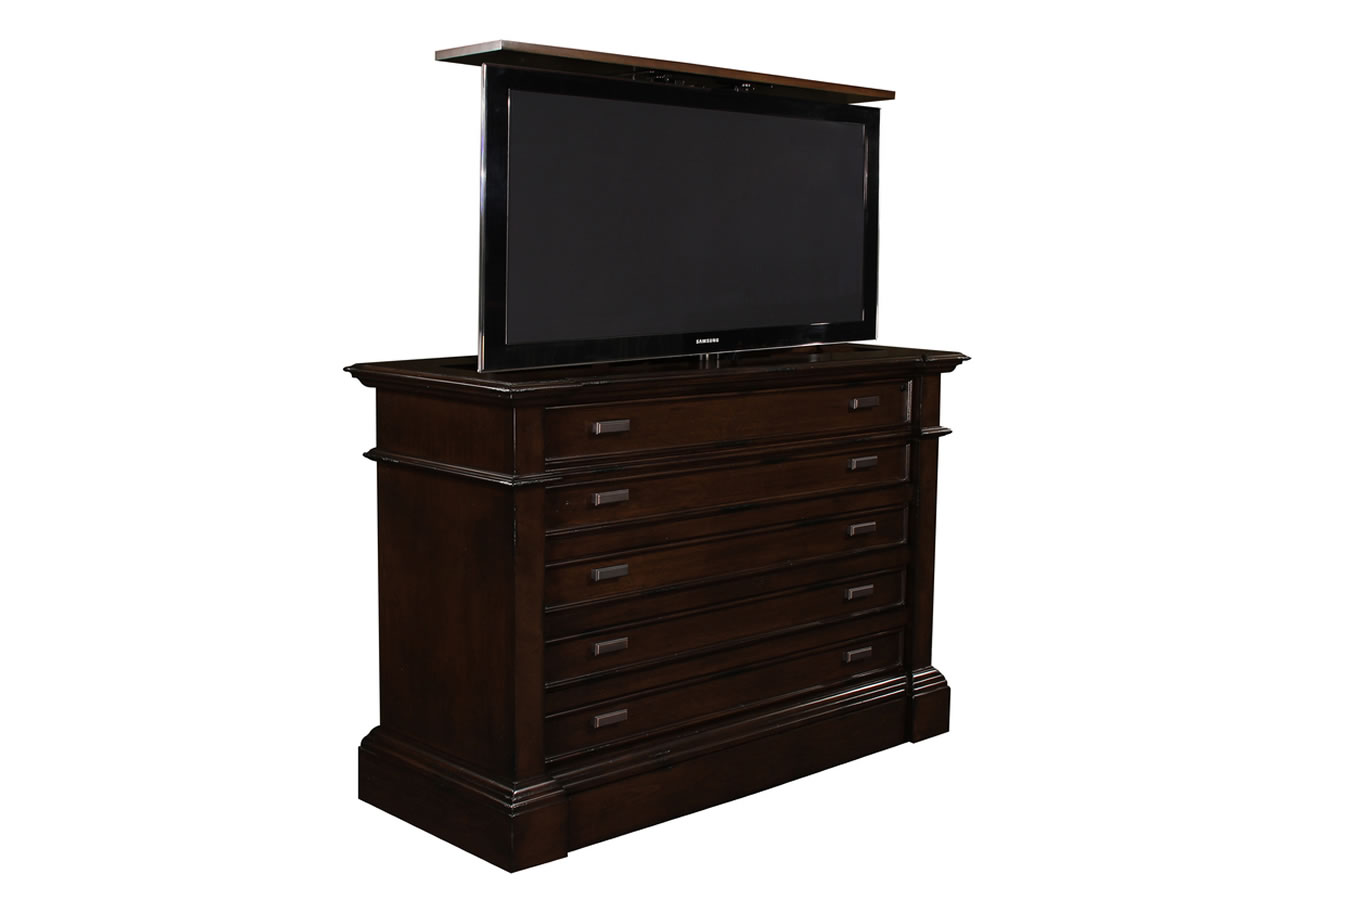 Santa Cruz dresser TV lift cabinet has high quality finish and US made TV lift system Built by Cabinet Tronix